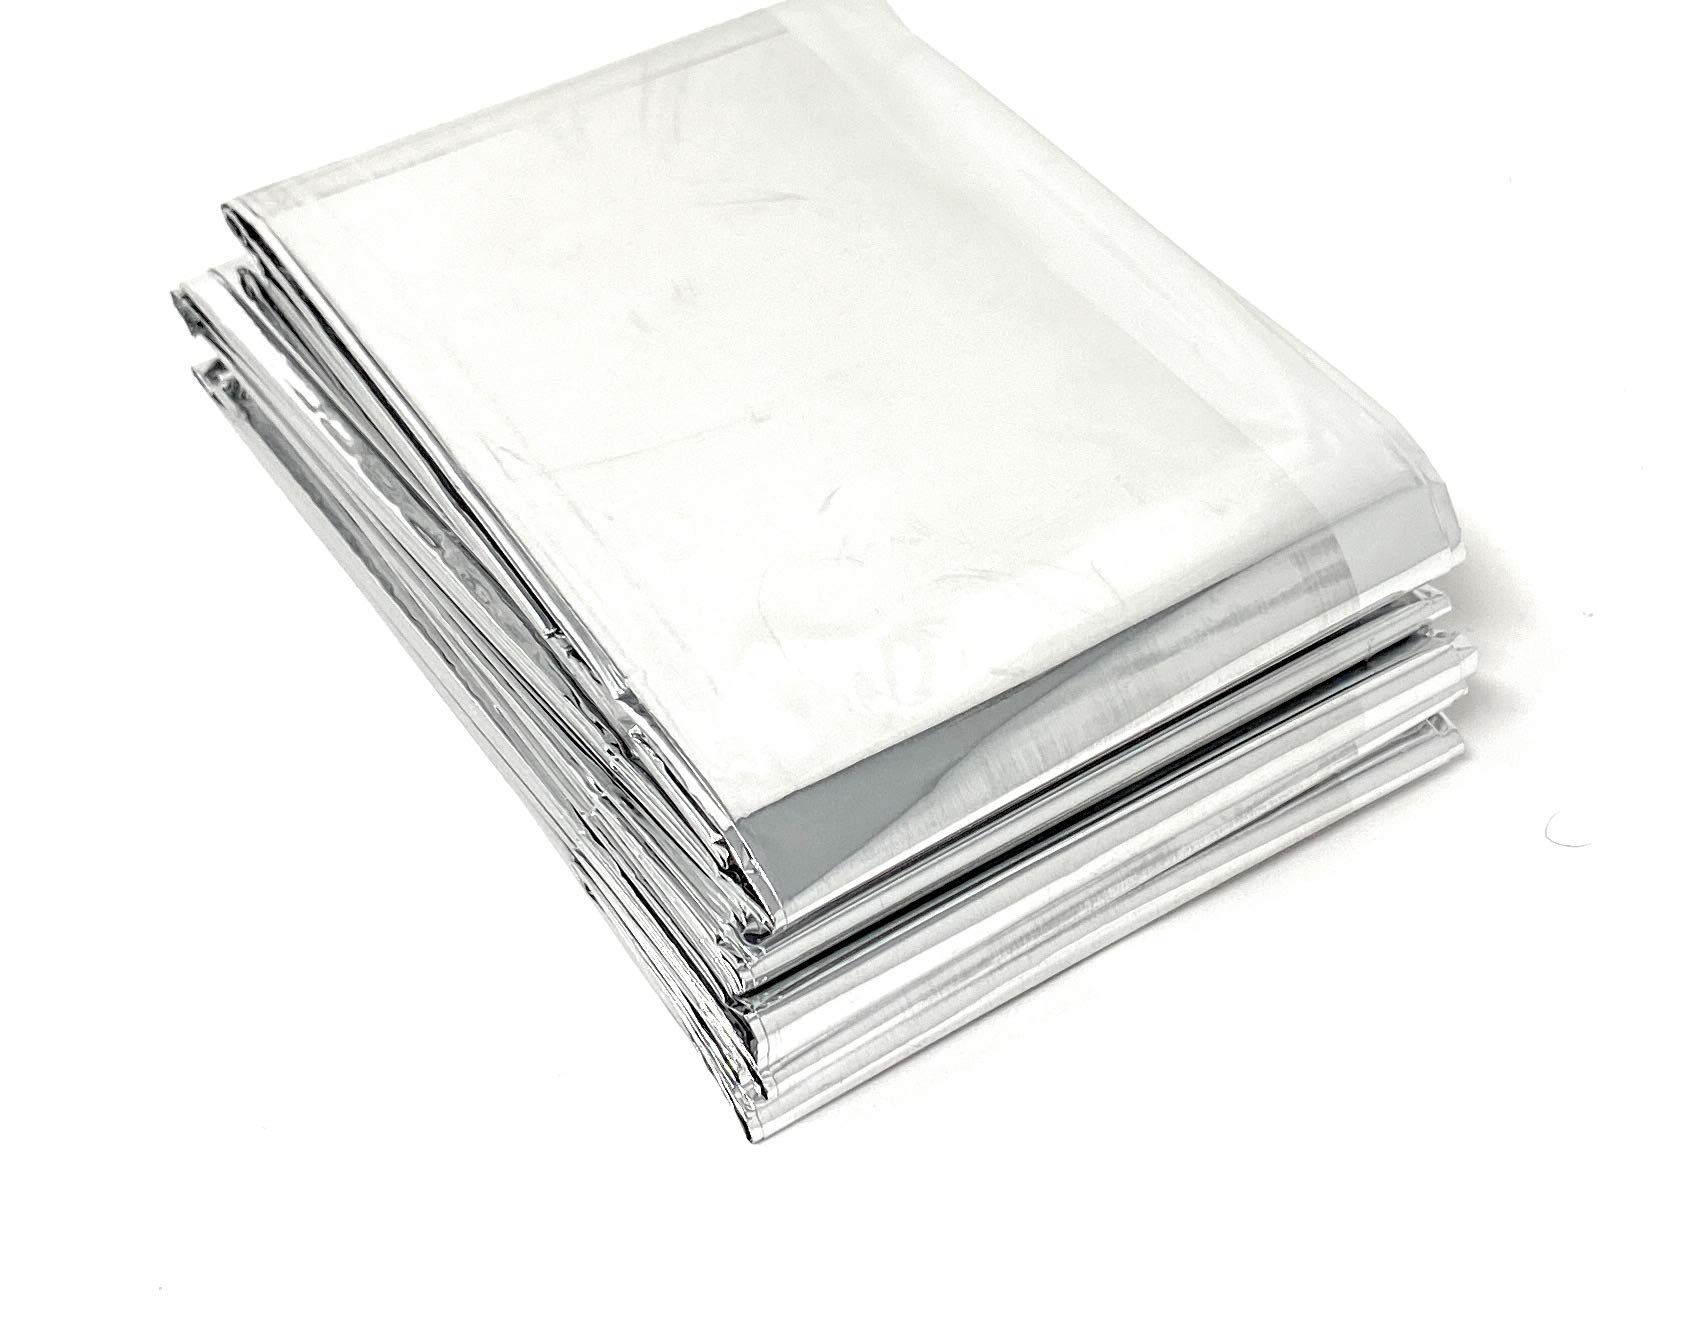 "Lot of 50 Emergency Foil Mylar Thermal Blanket , 52"" x 84"", Useful for Homeless care , Charity,natural disasters…"